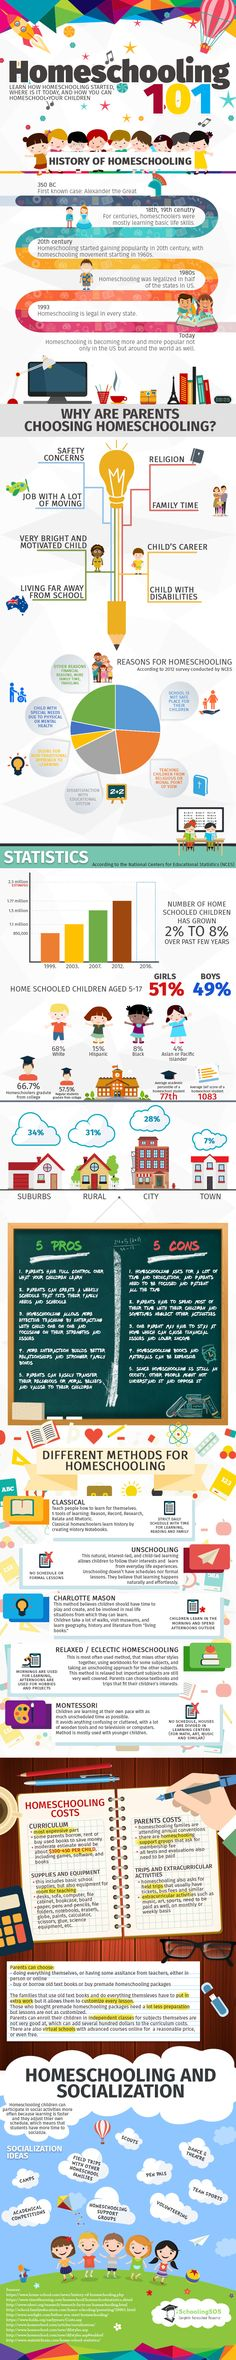 Did you know over 66% of homeschoolers graduate college? Or that the number 1 and 2 reason for homeschool are safety and religion? Here is a great infographic on homeschool. Visit SchoolingSOS.com …